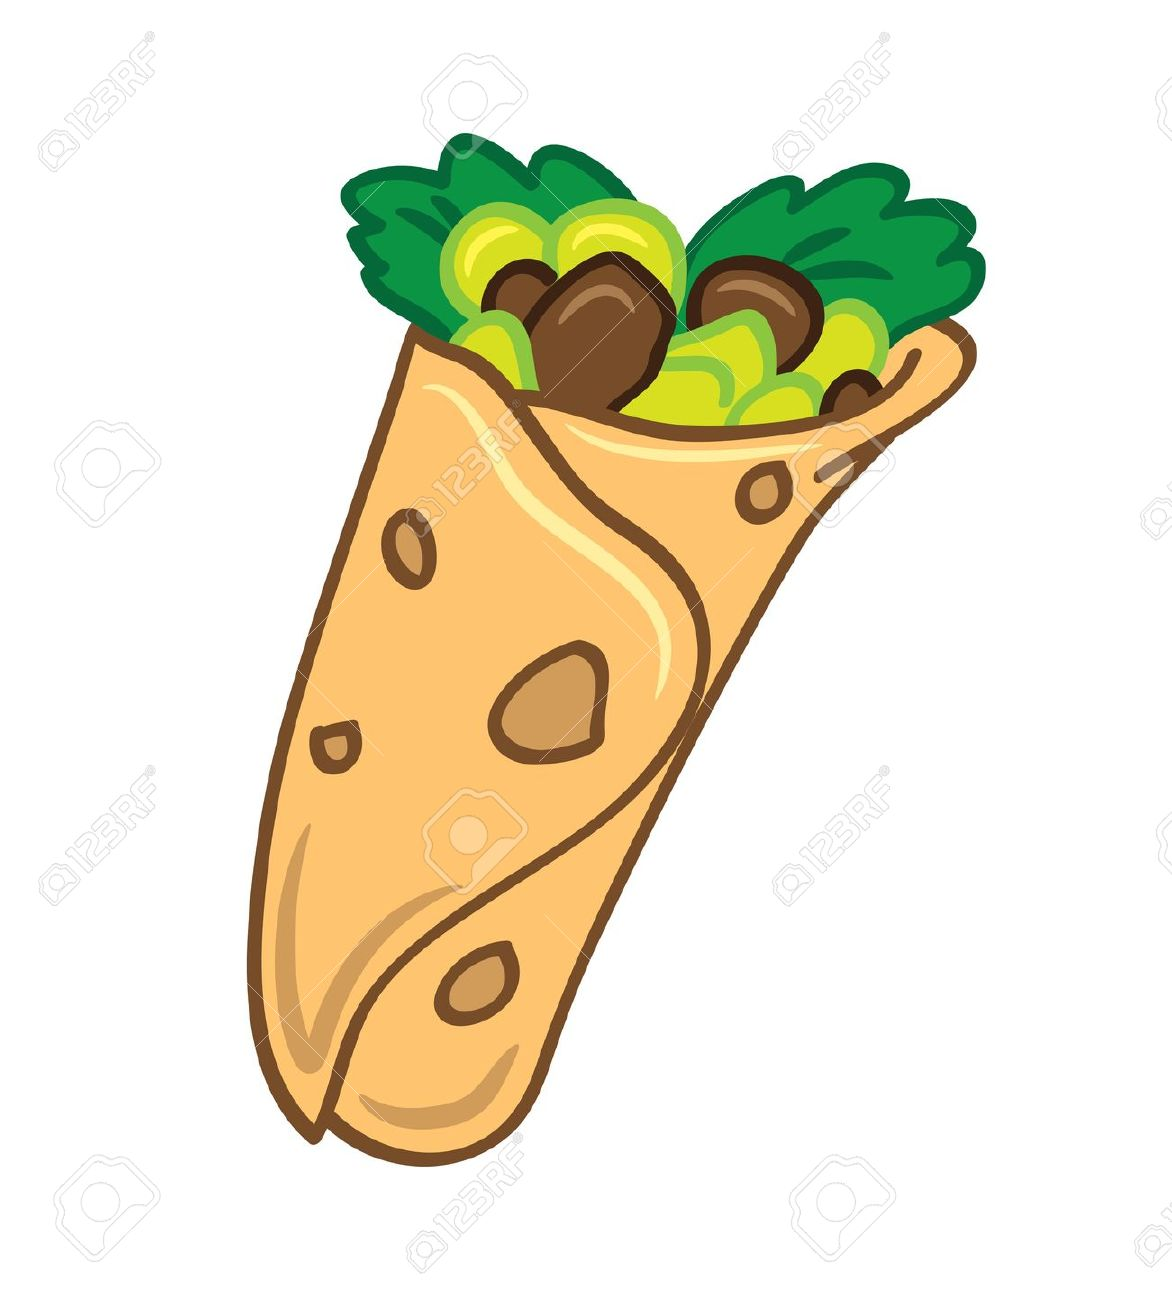 493 Tortilla Wrap Stock Vector Illustration And Royalty Free.